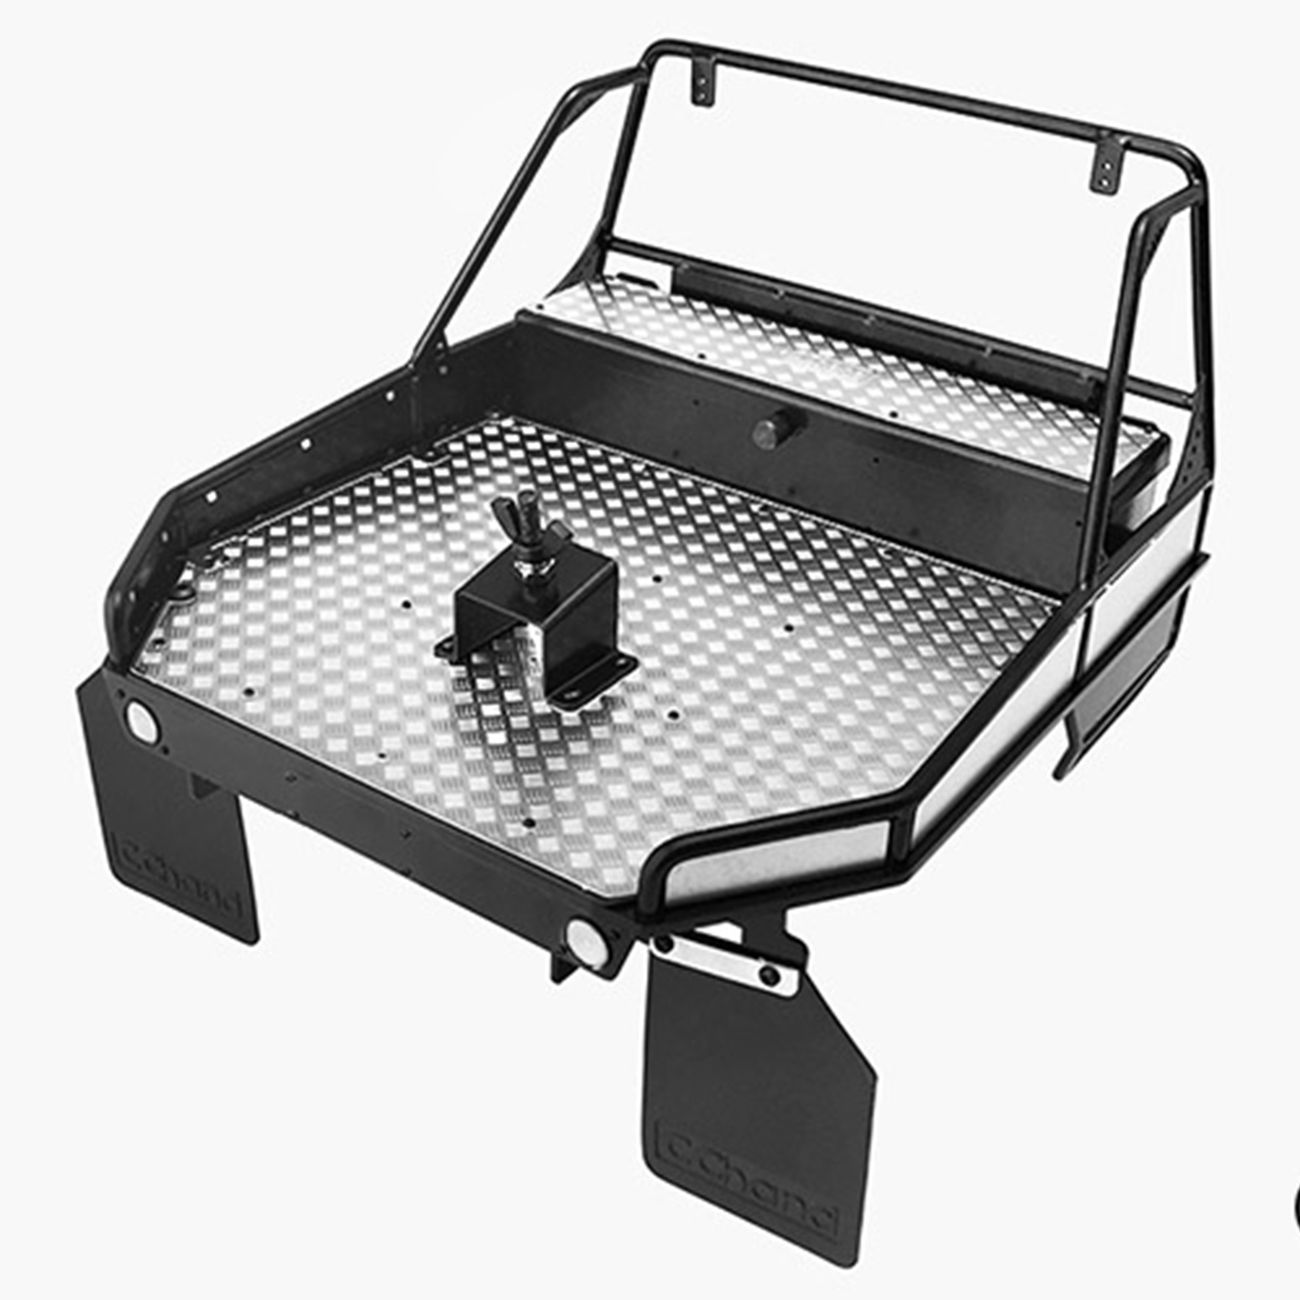 RC4WD Rear Tube Bed For Trail Finder 2 w/Mud Flaps (Black) VVV-C0253 2